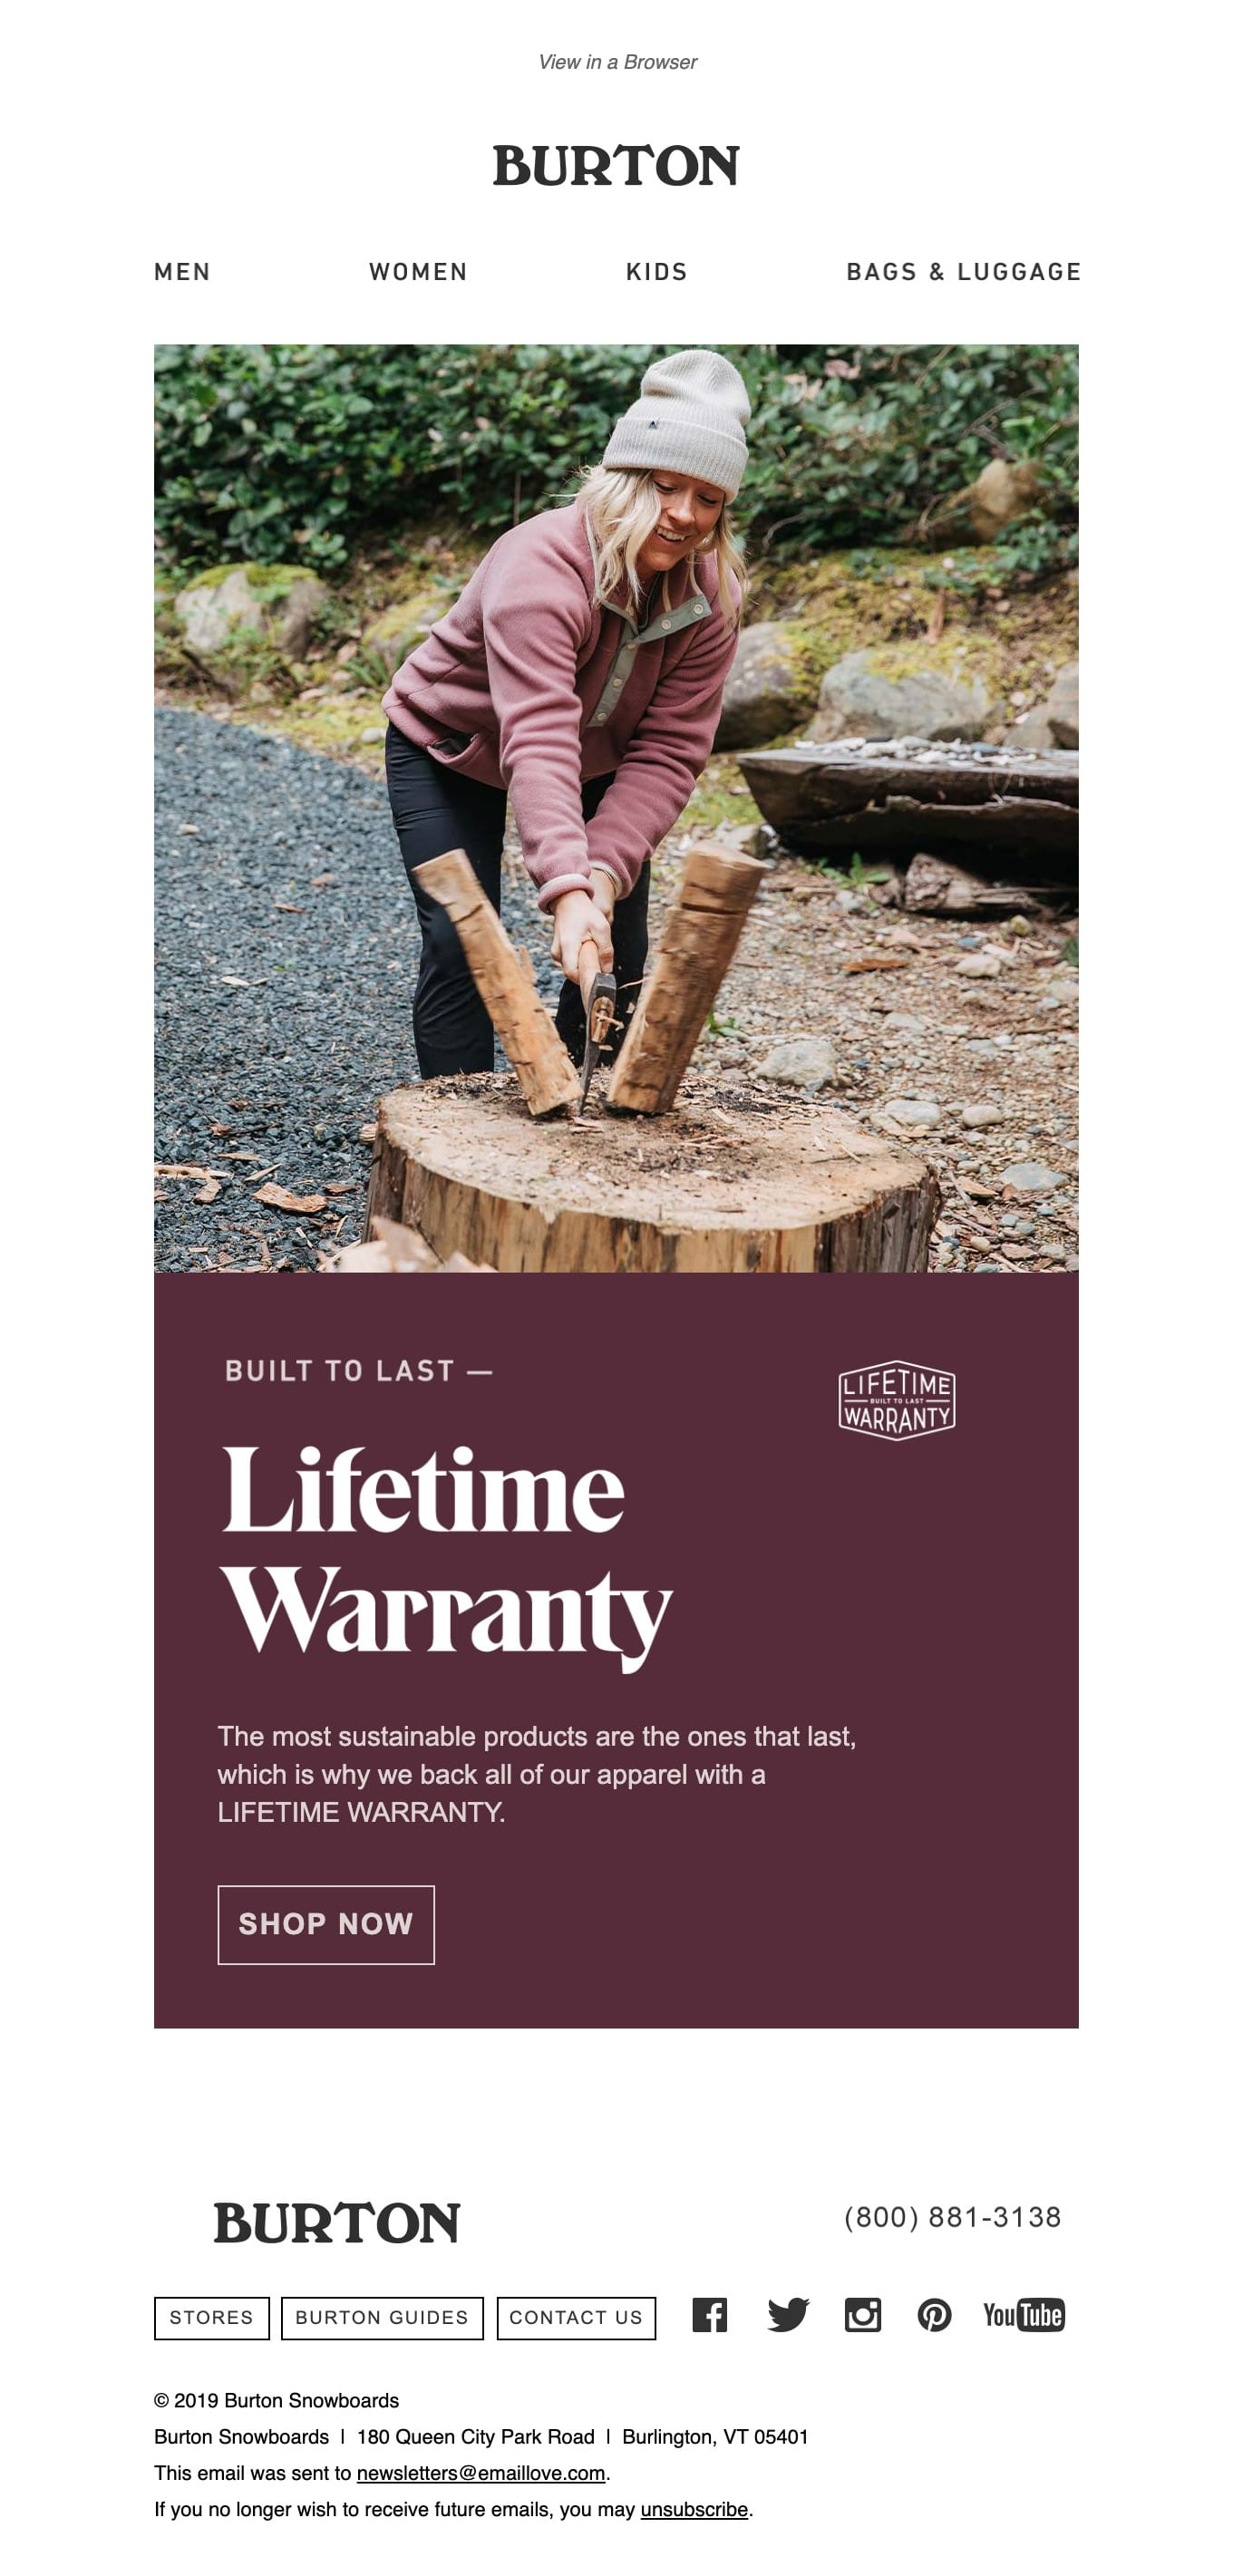 LIFETIME WARRANTY: Sustainable Products That Last Email Screenshot